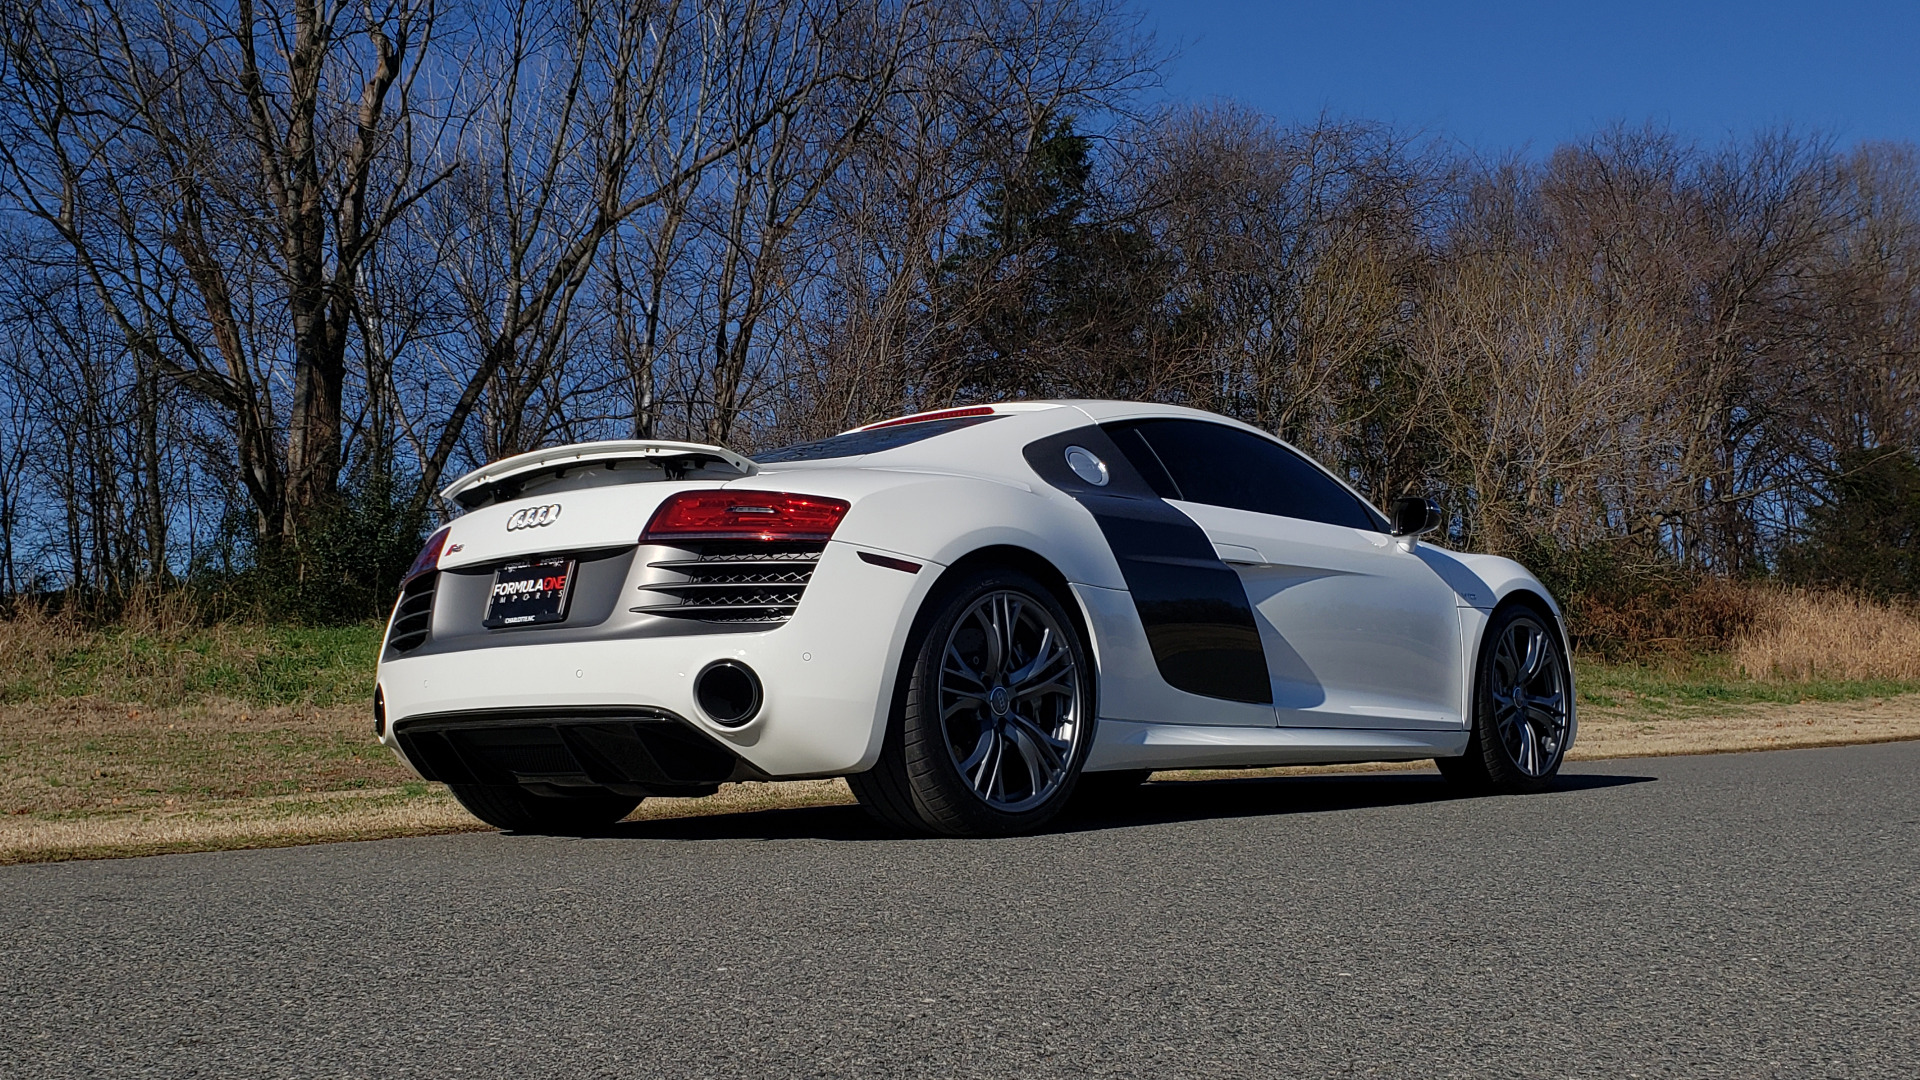 Used 2015 Audi R8 V10 PLUS / S-TRONIC / B&O SOUND / SPORT EXH / REARVIEW for sale Sold at Formula Imports in Charlotte NC 28227 13